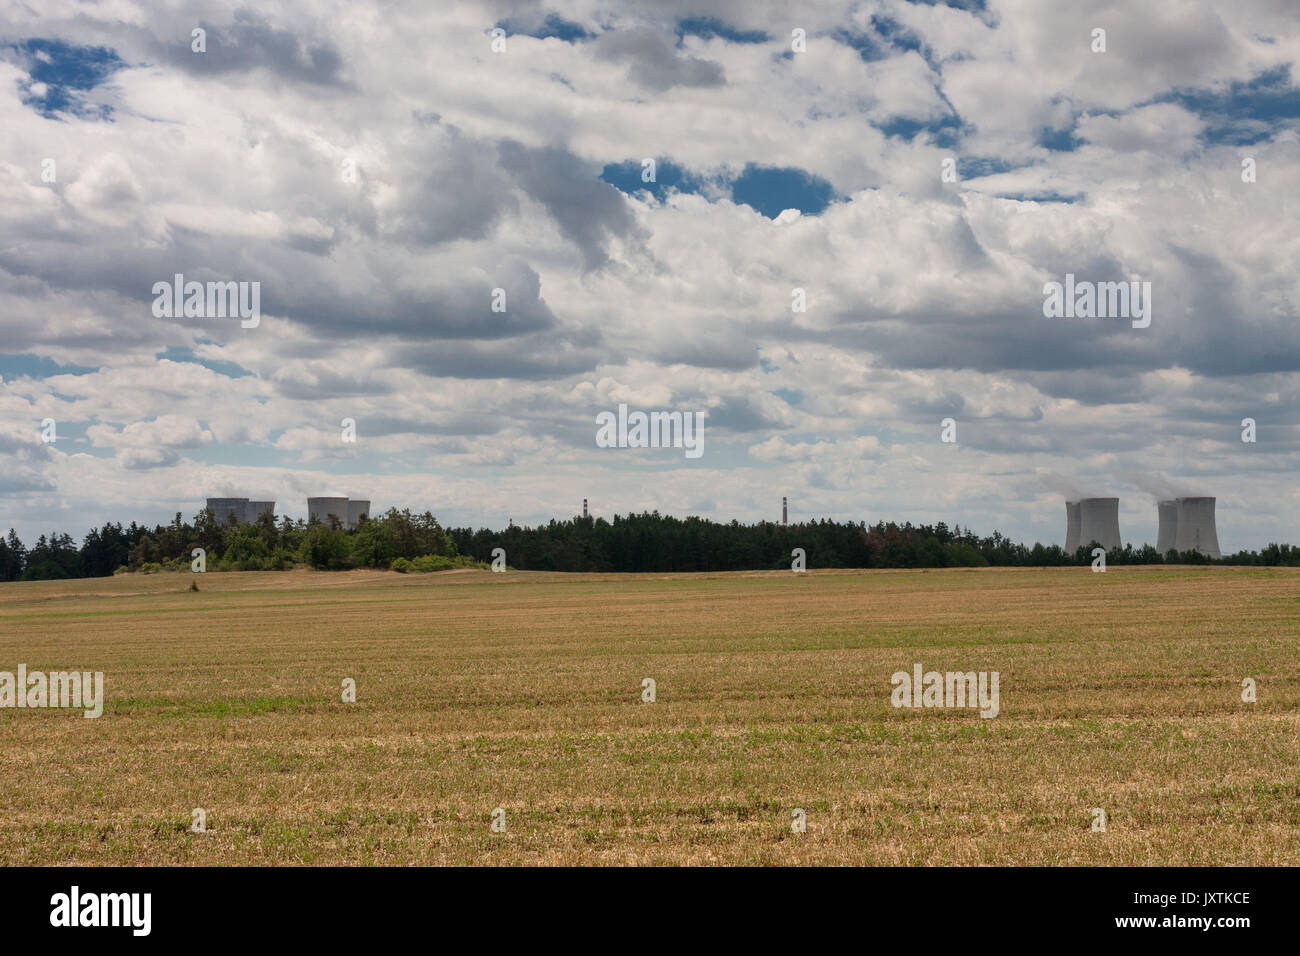 Aerial view of nuclear power station with cooling towers against cloudy sky, in the foreground  field. - Stock Image